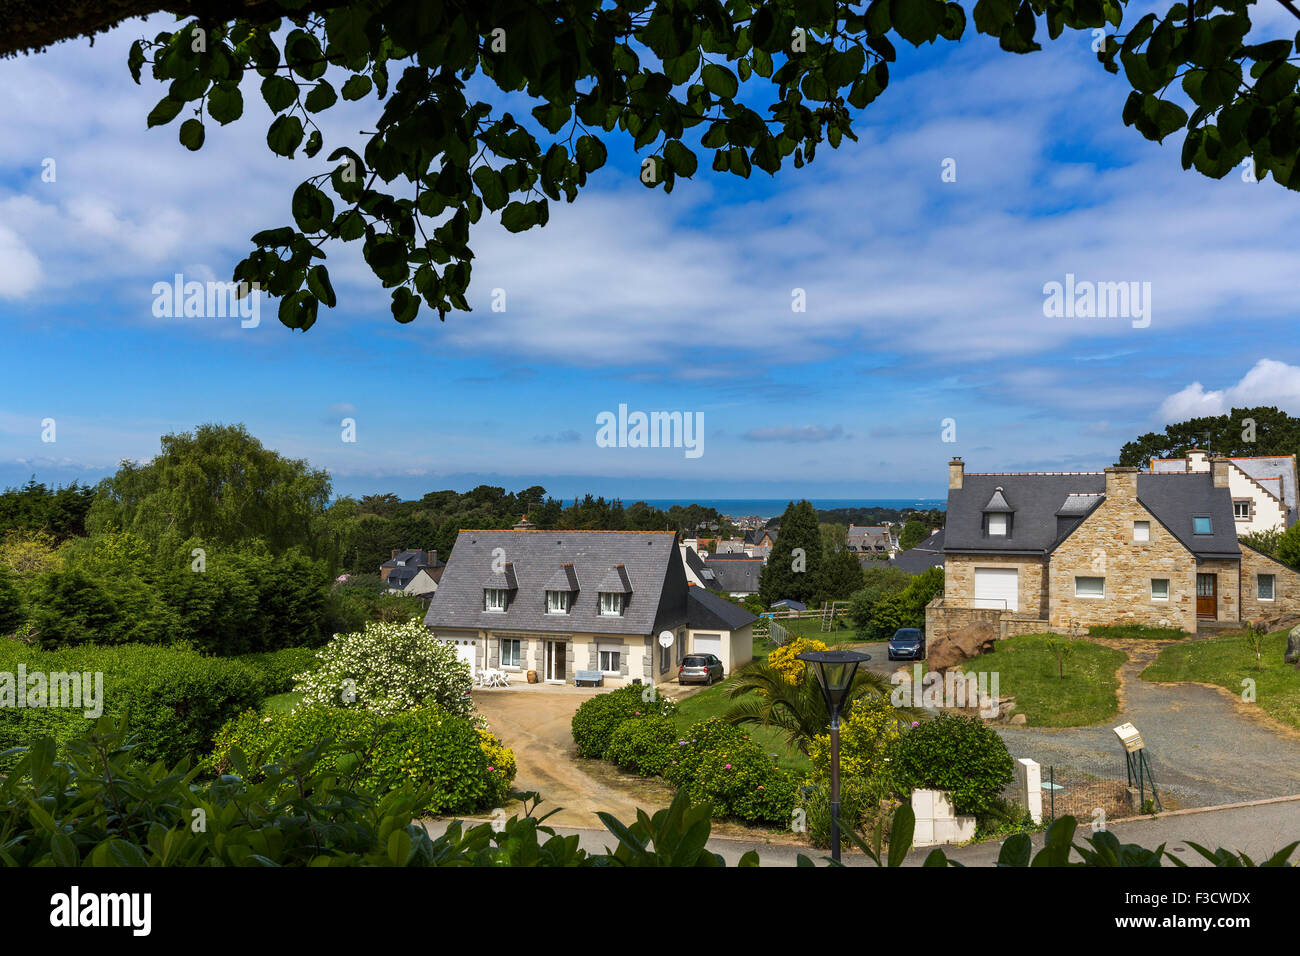 La Clarte Perros Guirec French Brittany France Europe Stock Photo